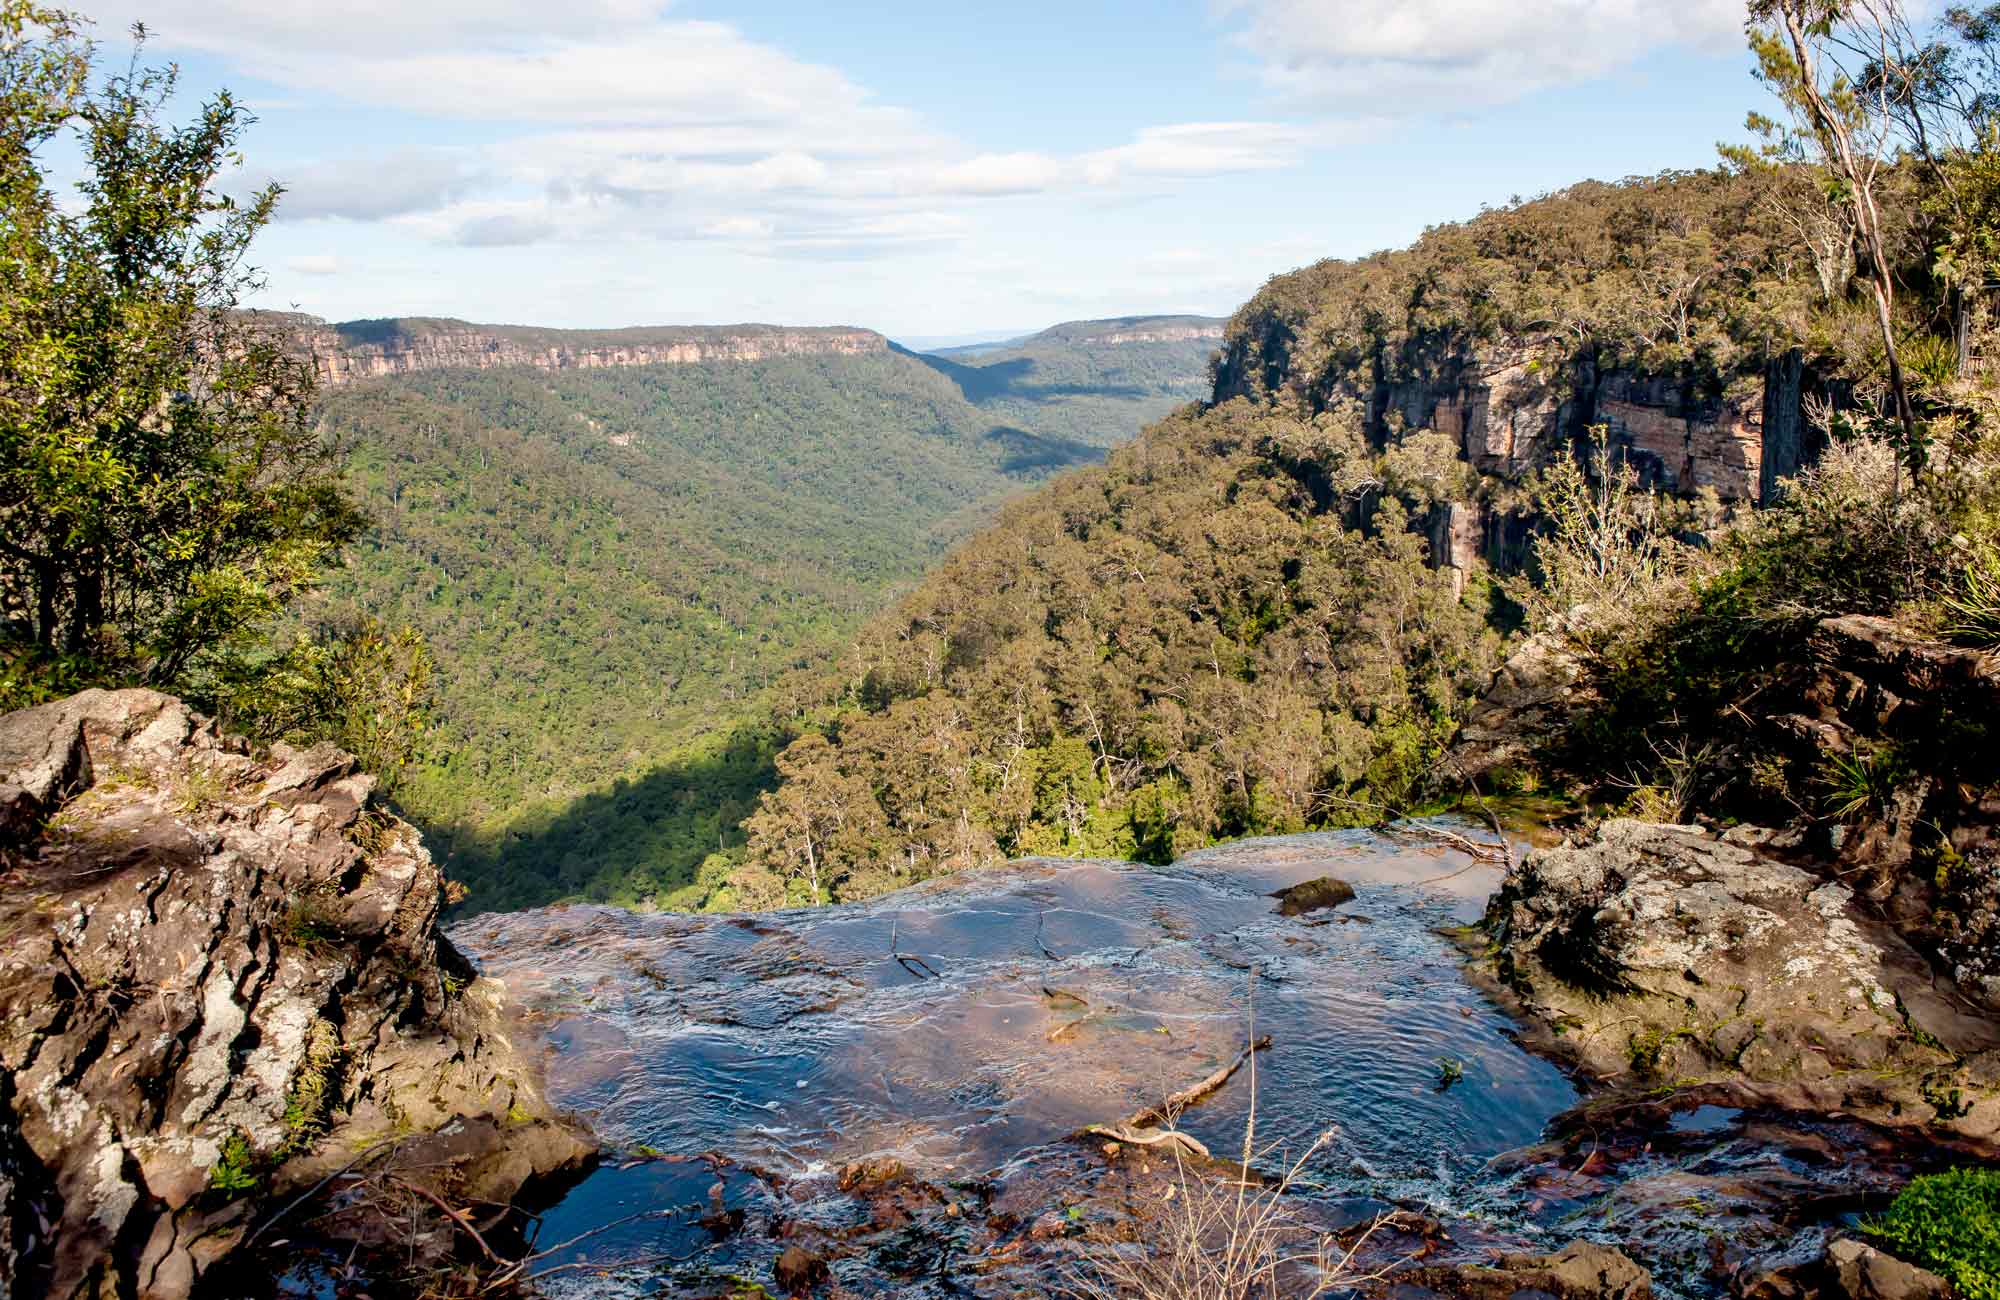 West Rim walking track, Morton National Park. Photo: John Yurasek